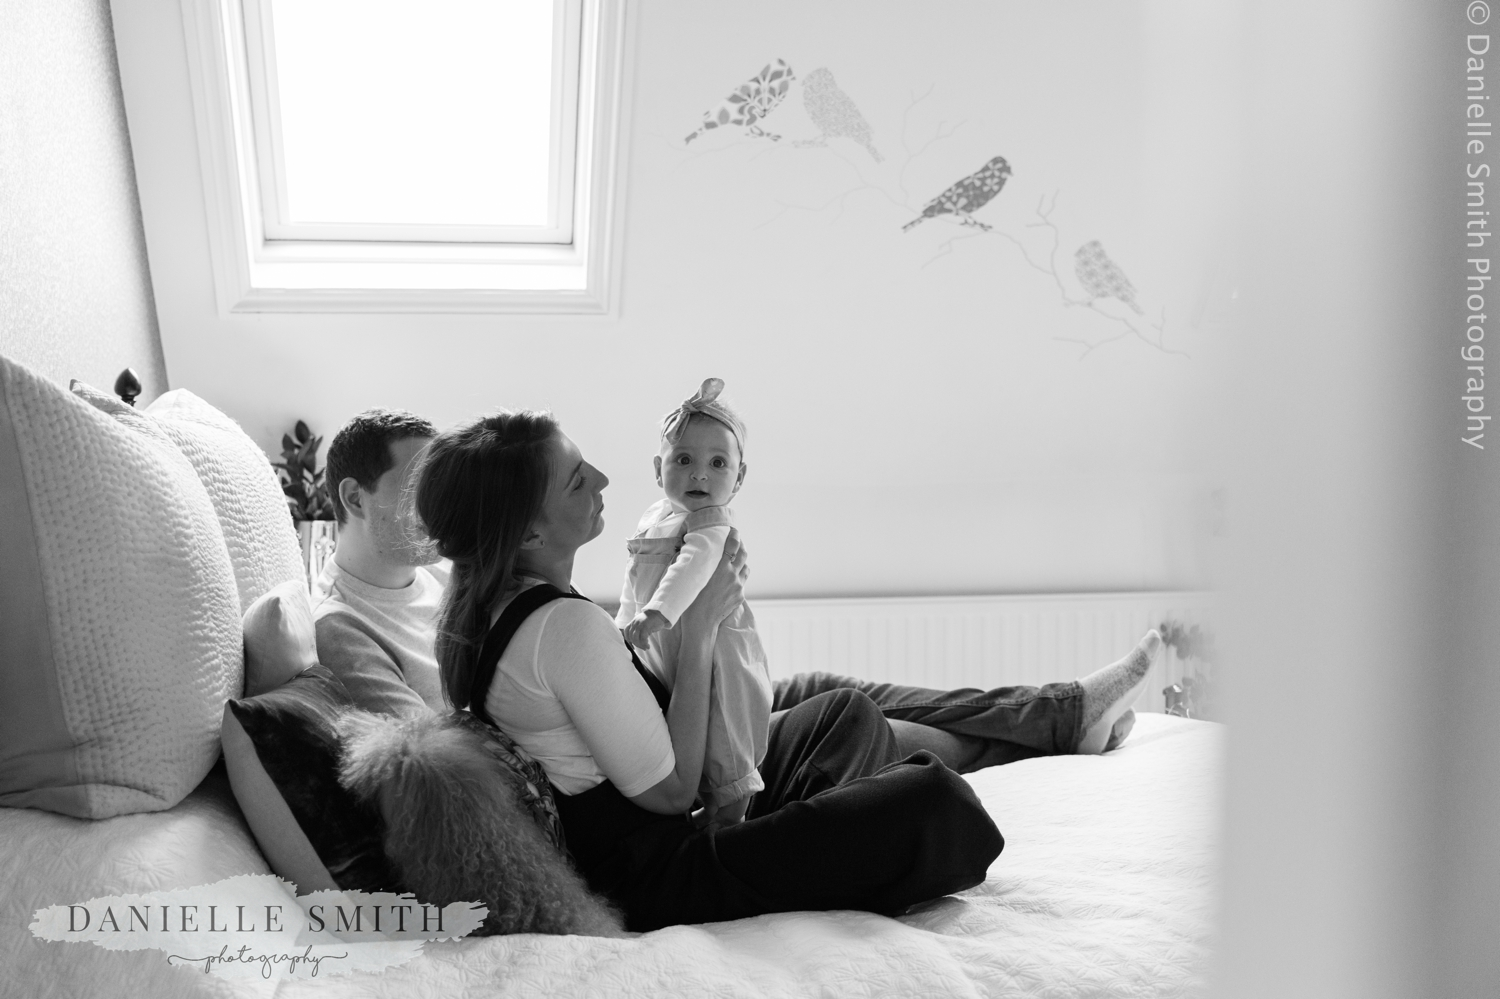 mum and dad with baby girl at home - natural family photos